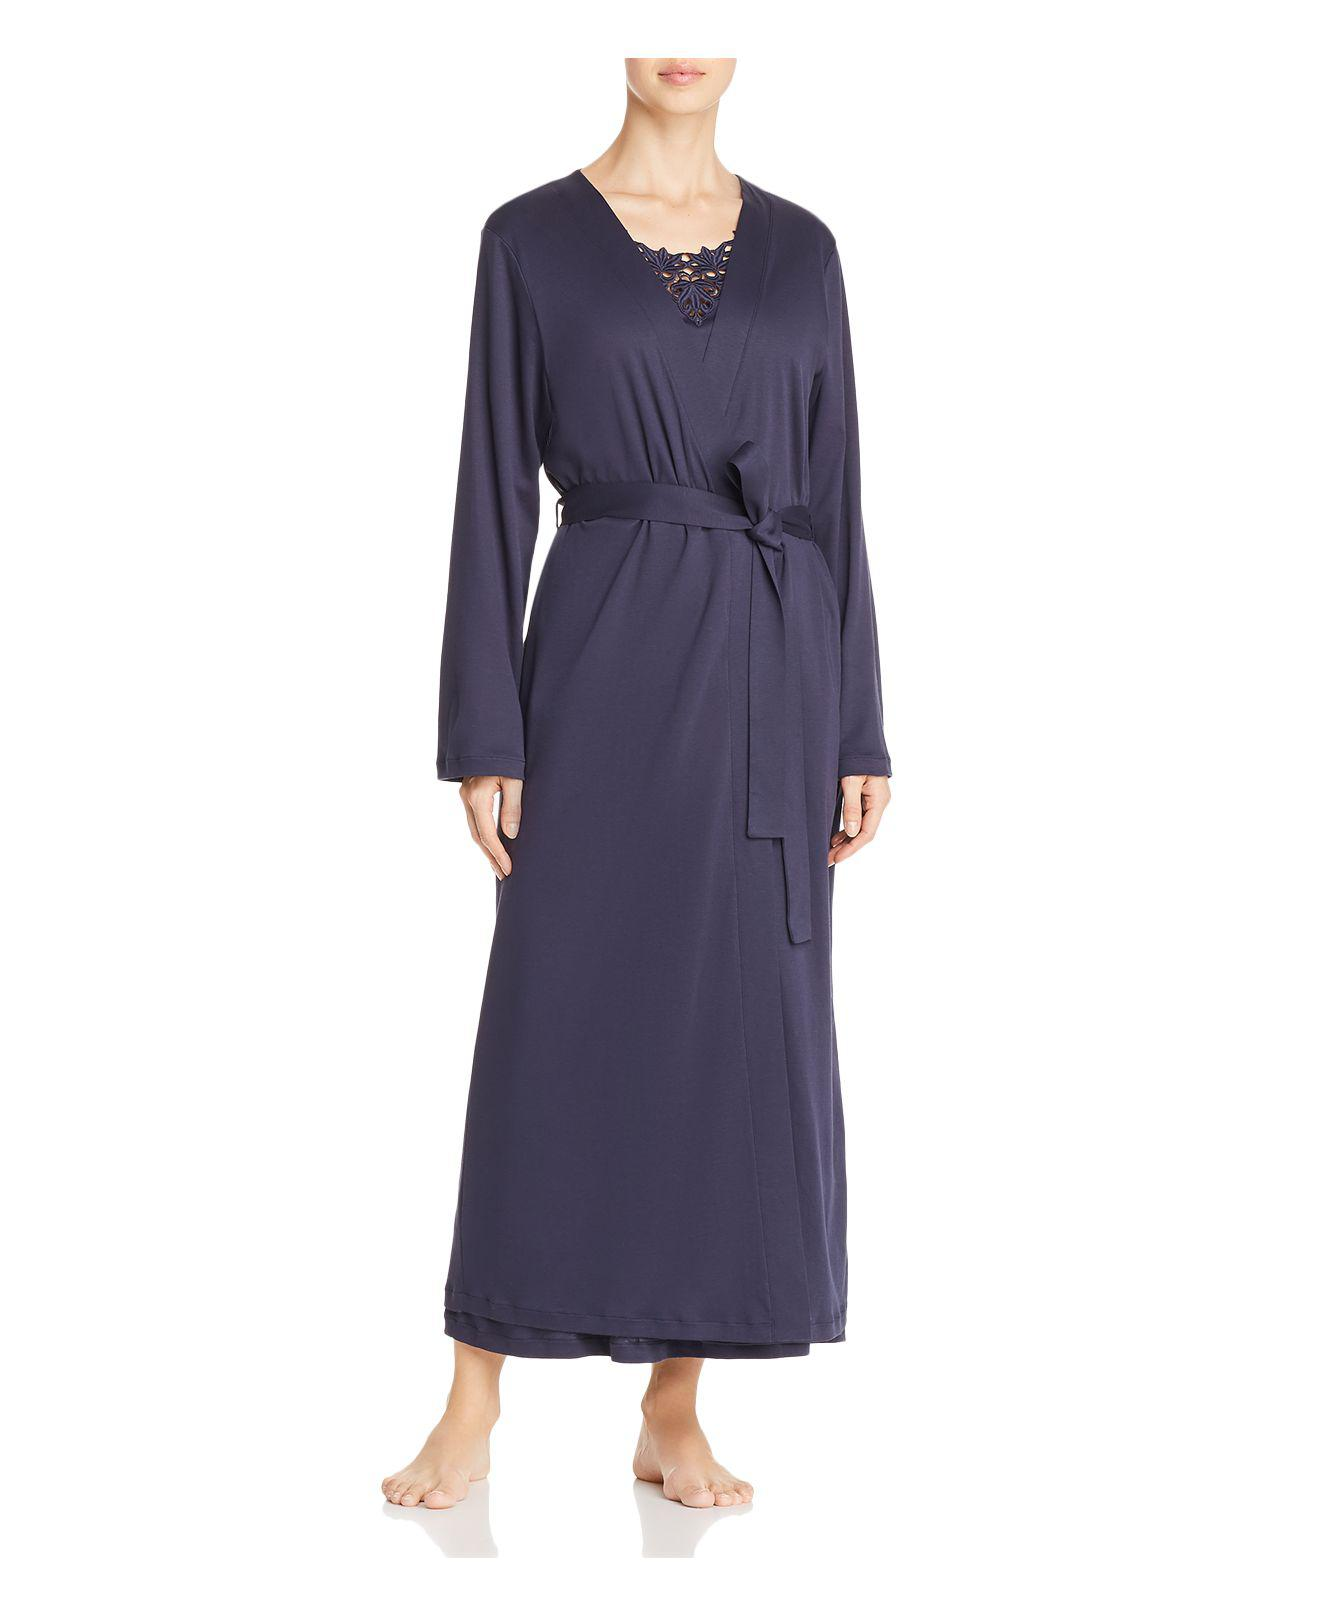 98a0d0a702 Lyst - Hanro Jasmin Embroidered Long Robe in Blue